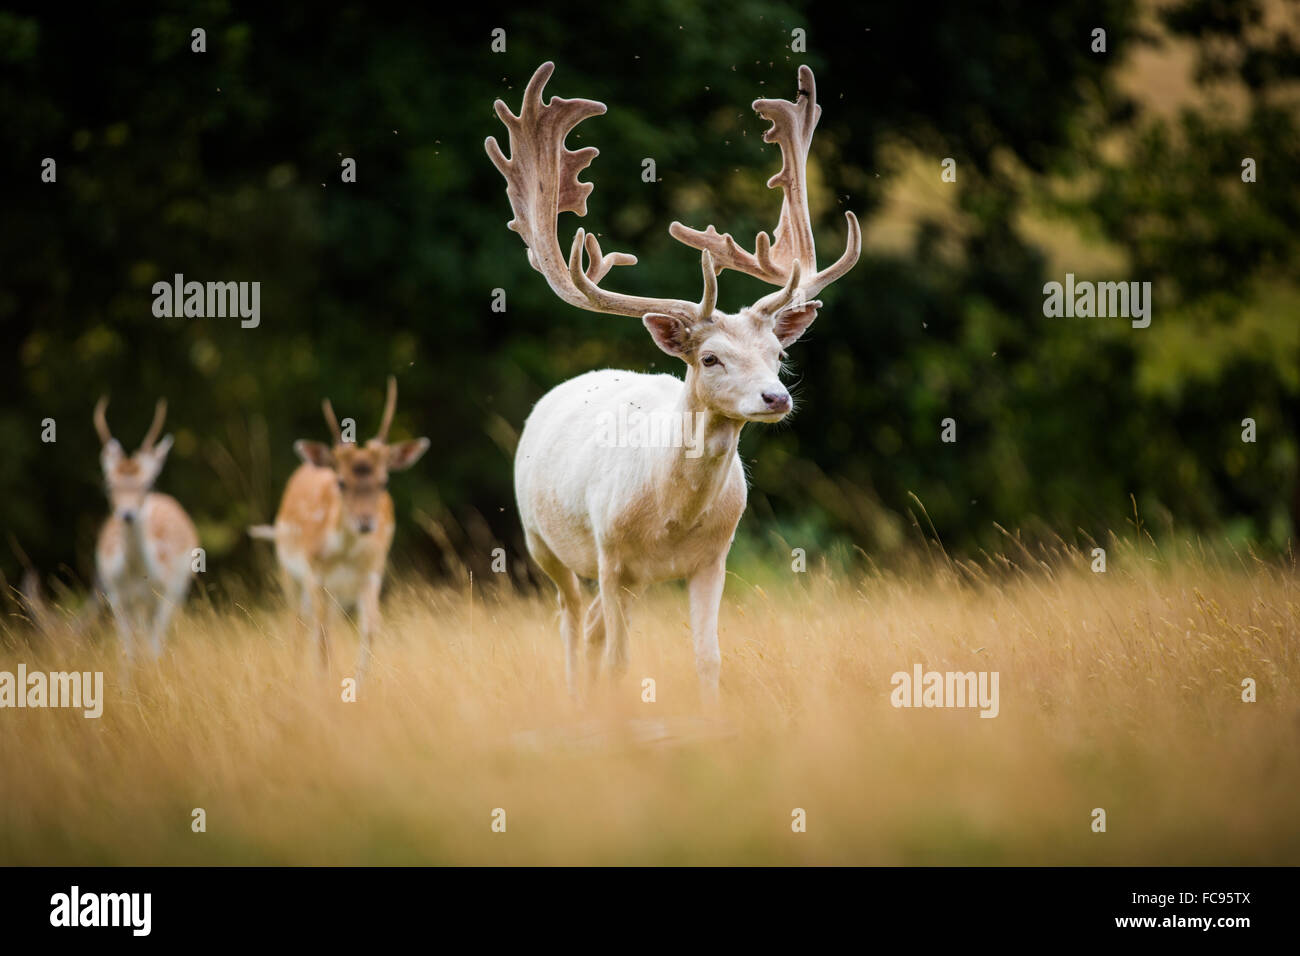 Deer, United Kingdom, Europe - Stock Image